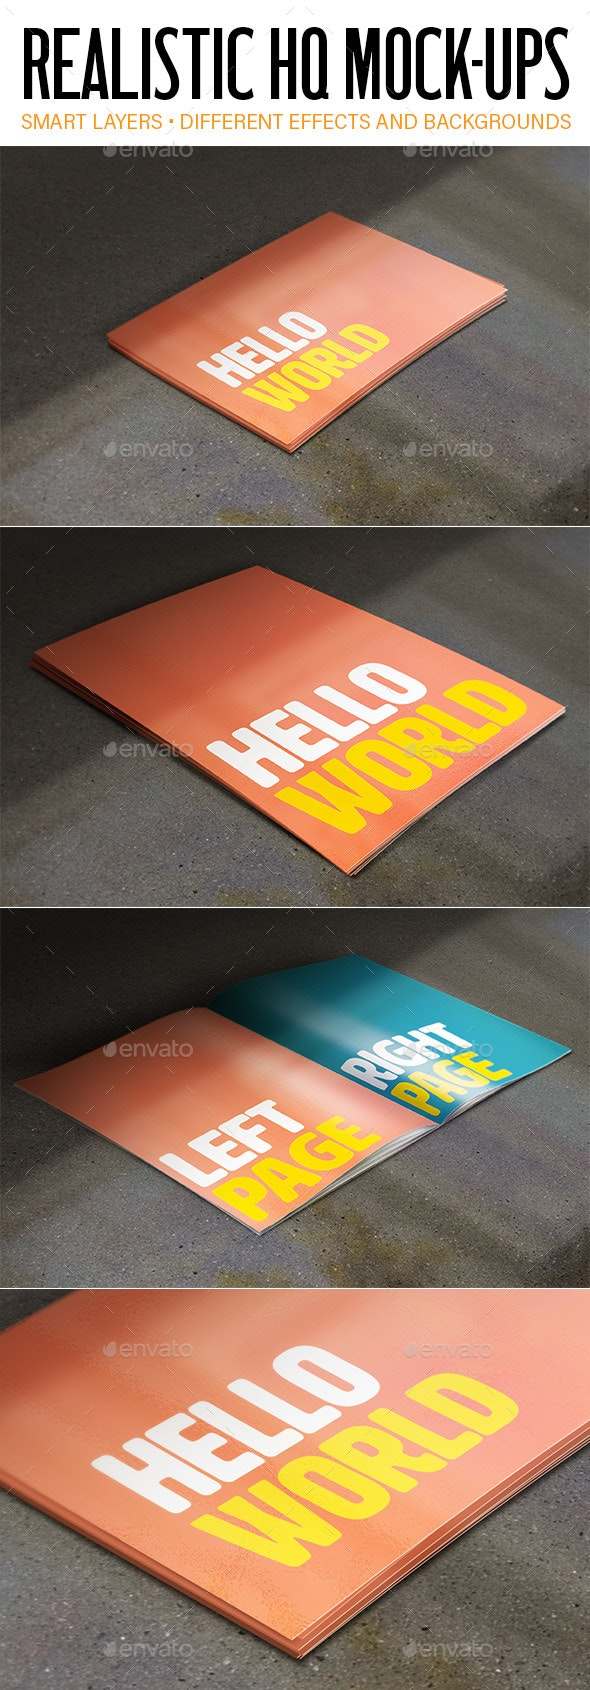 Realistic Mock-Ups - Product Mock-Ups Graphics